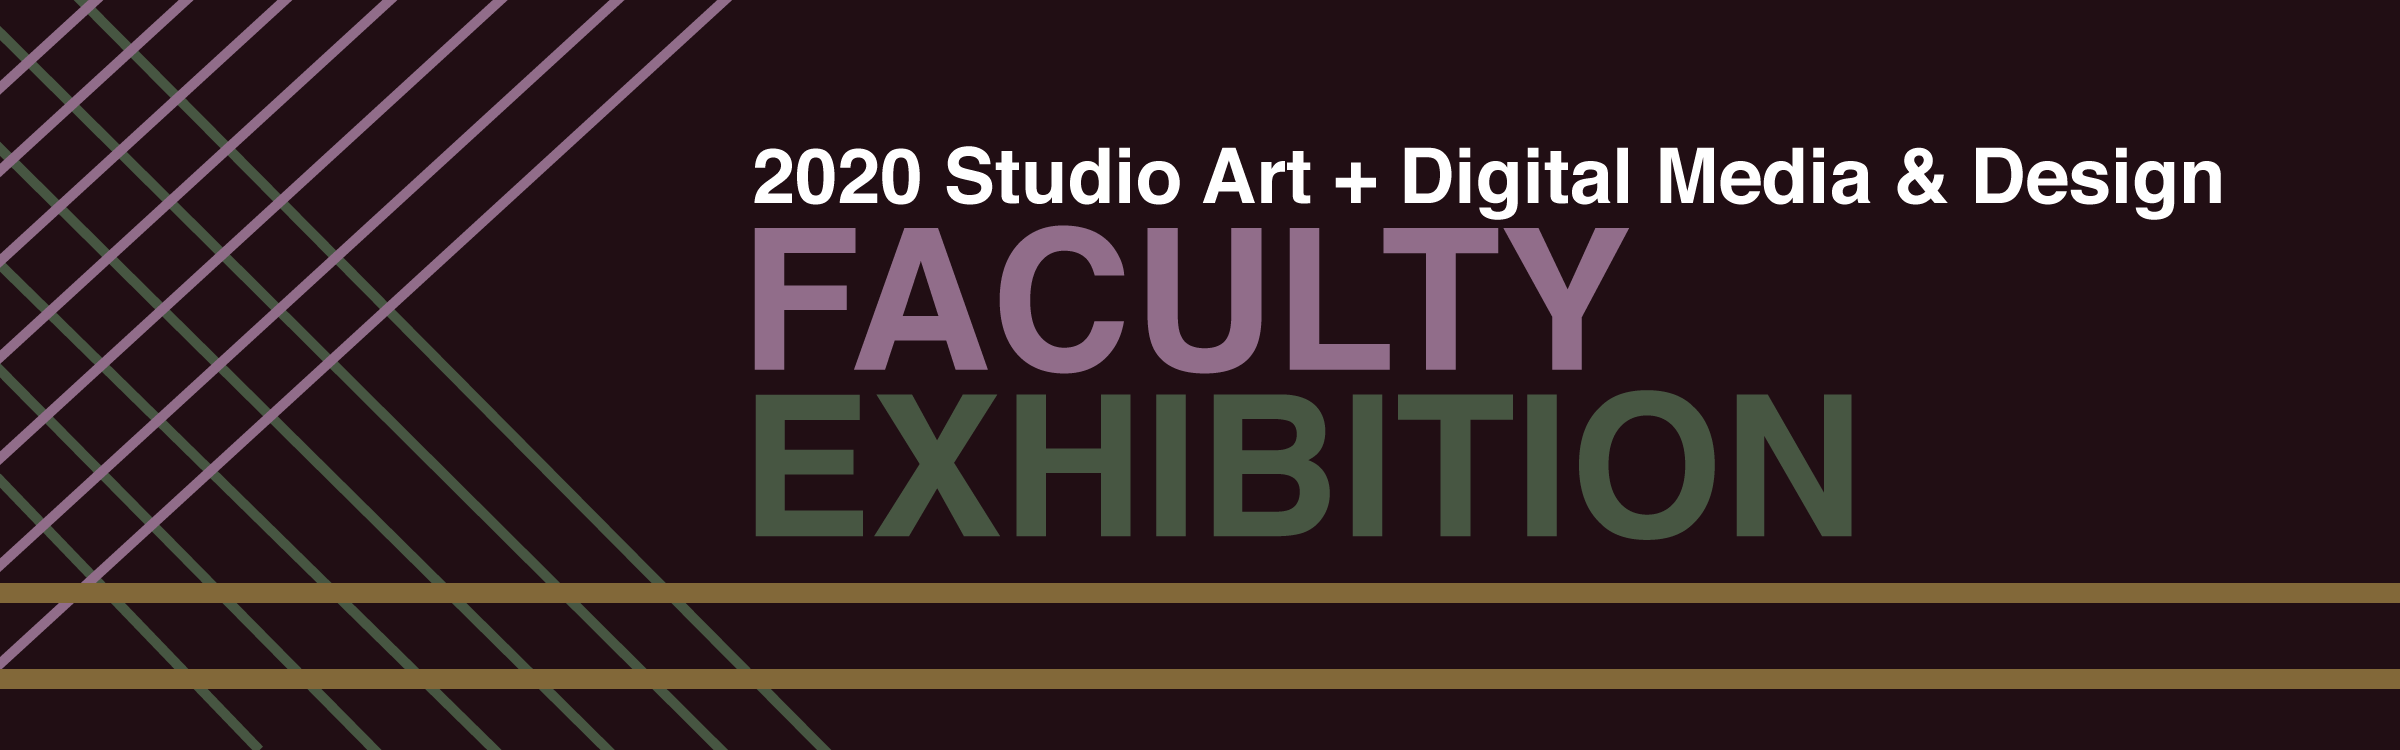 banner image for the 2020 studio art and digital media and design faculty exhibition